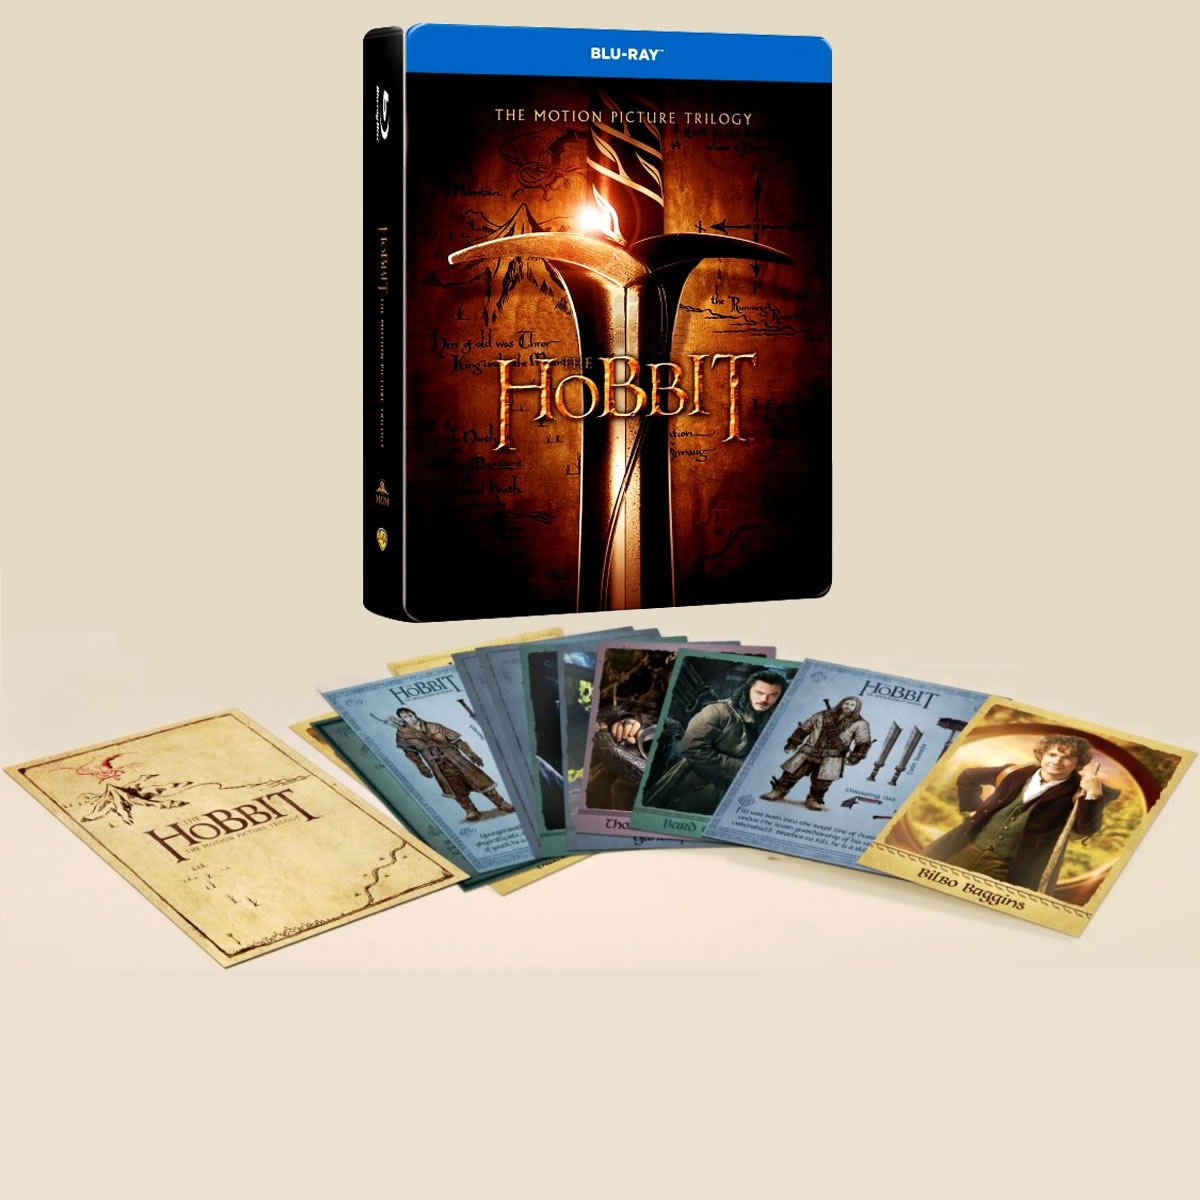 THE HOBBIT: THE MOTION PICTURE TRILOGY + 20x CHARACTER CARDS Limited Collector's Edition Steelbook [Imported] (6 BLU-RAYs)